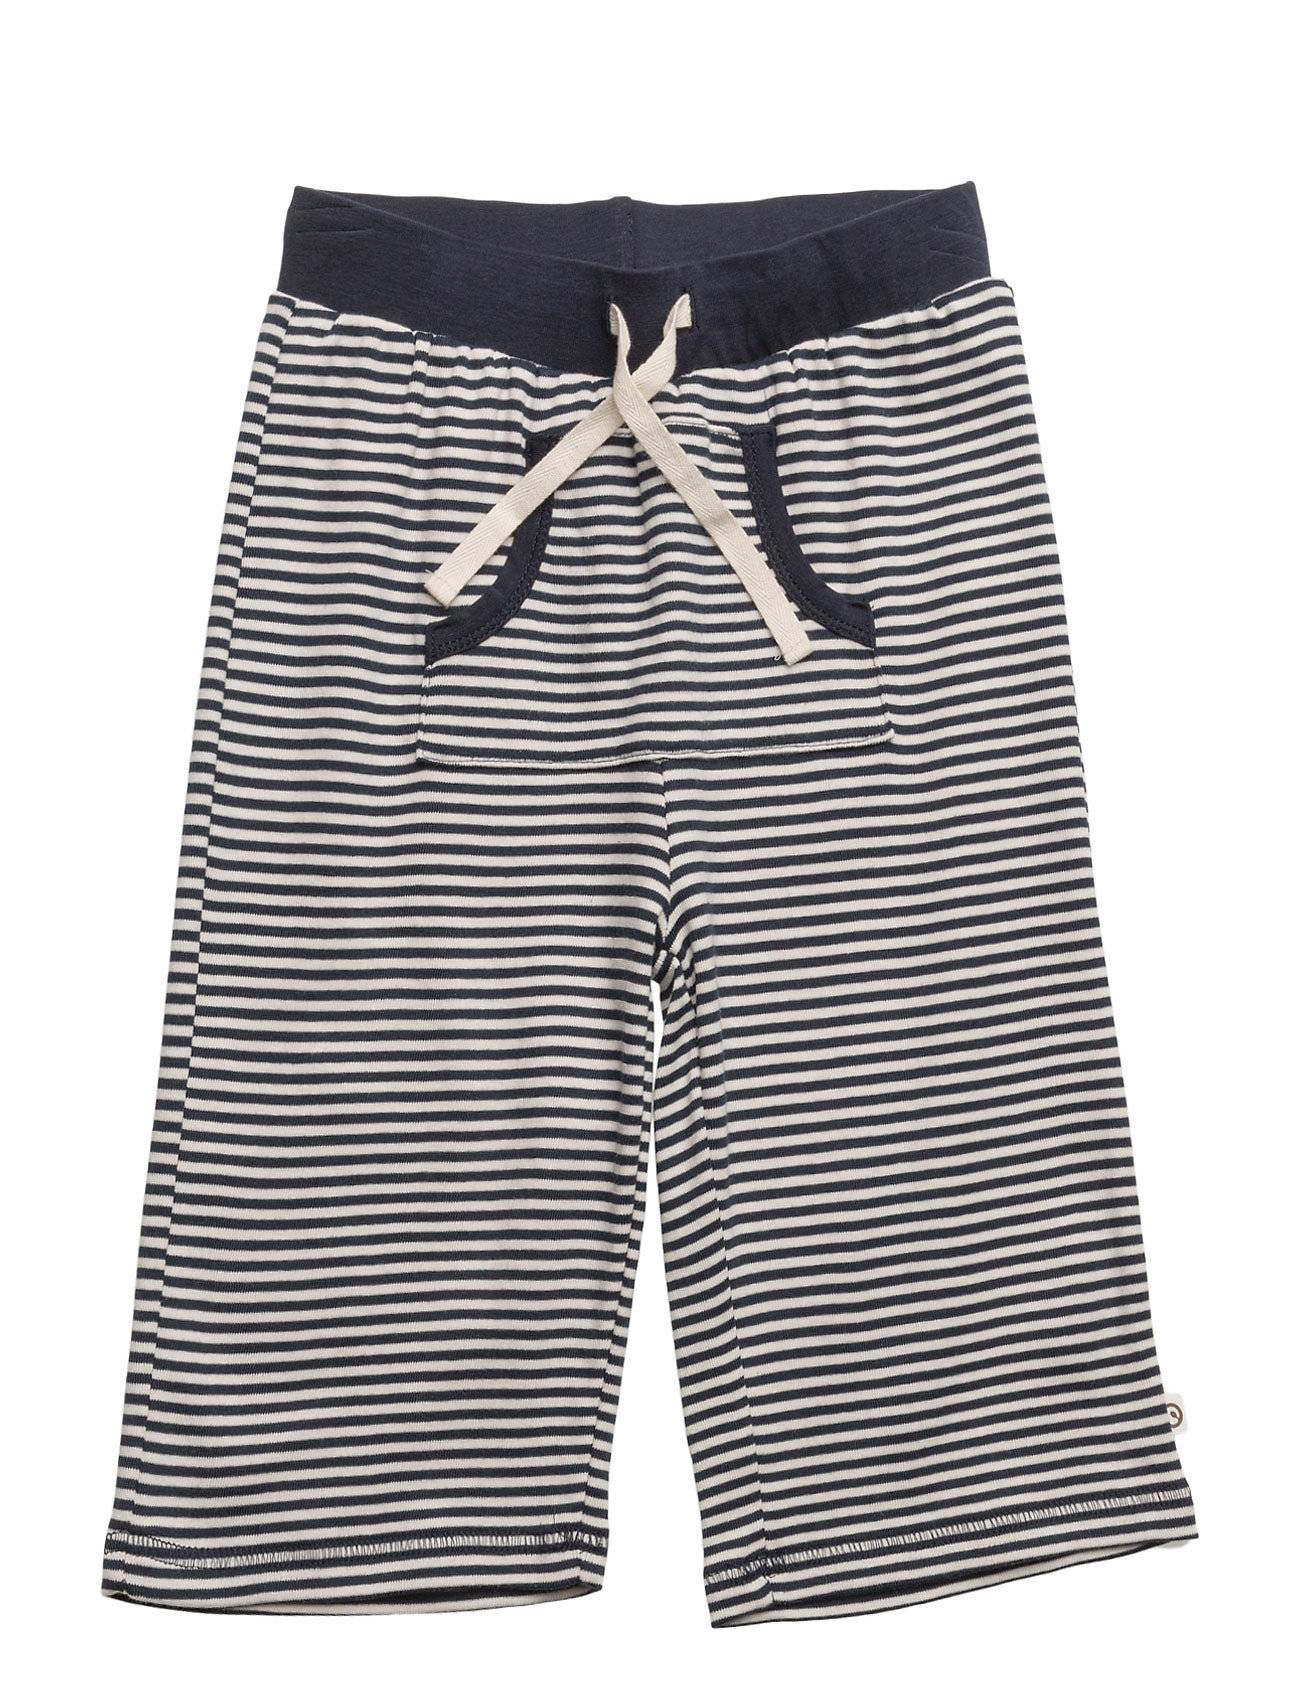 Müsli by Green Cotton Stripe Shorts